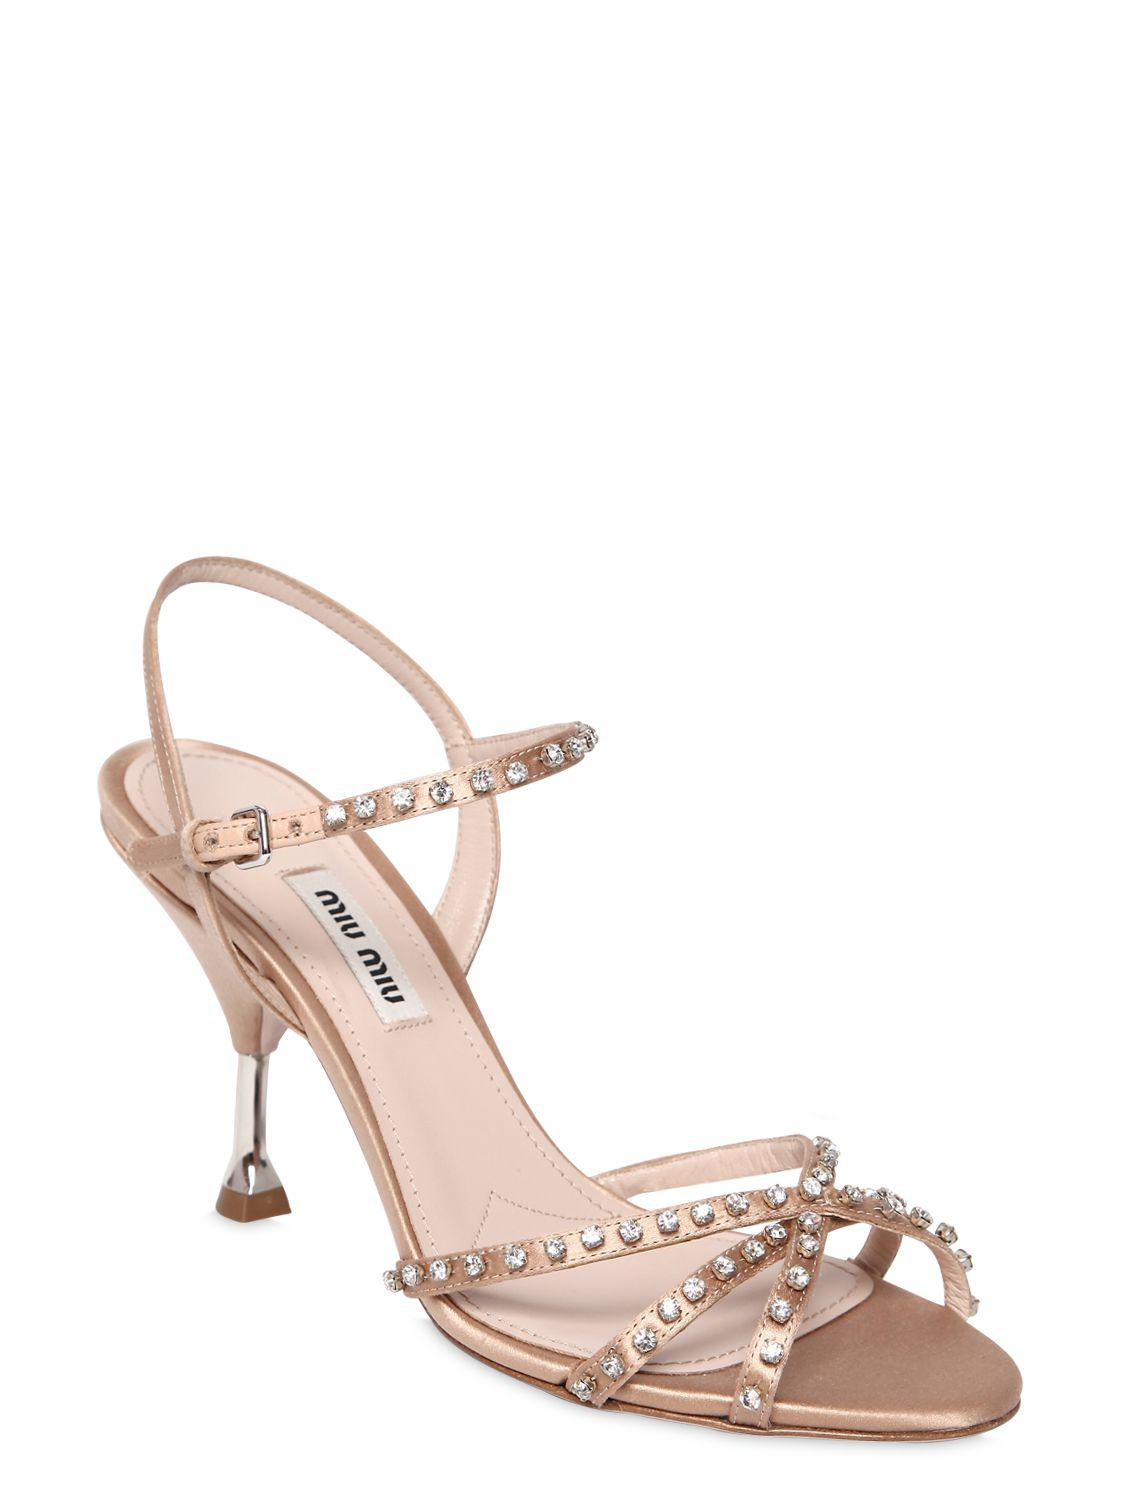 Miu Miu 85MM SWAROVSKI SATIN SANDALS